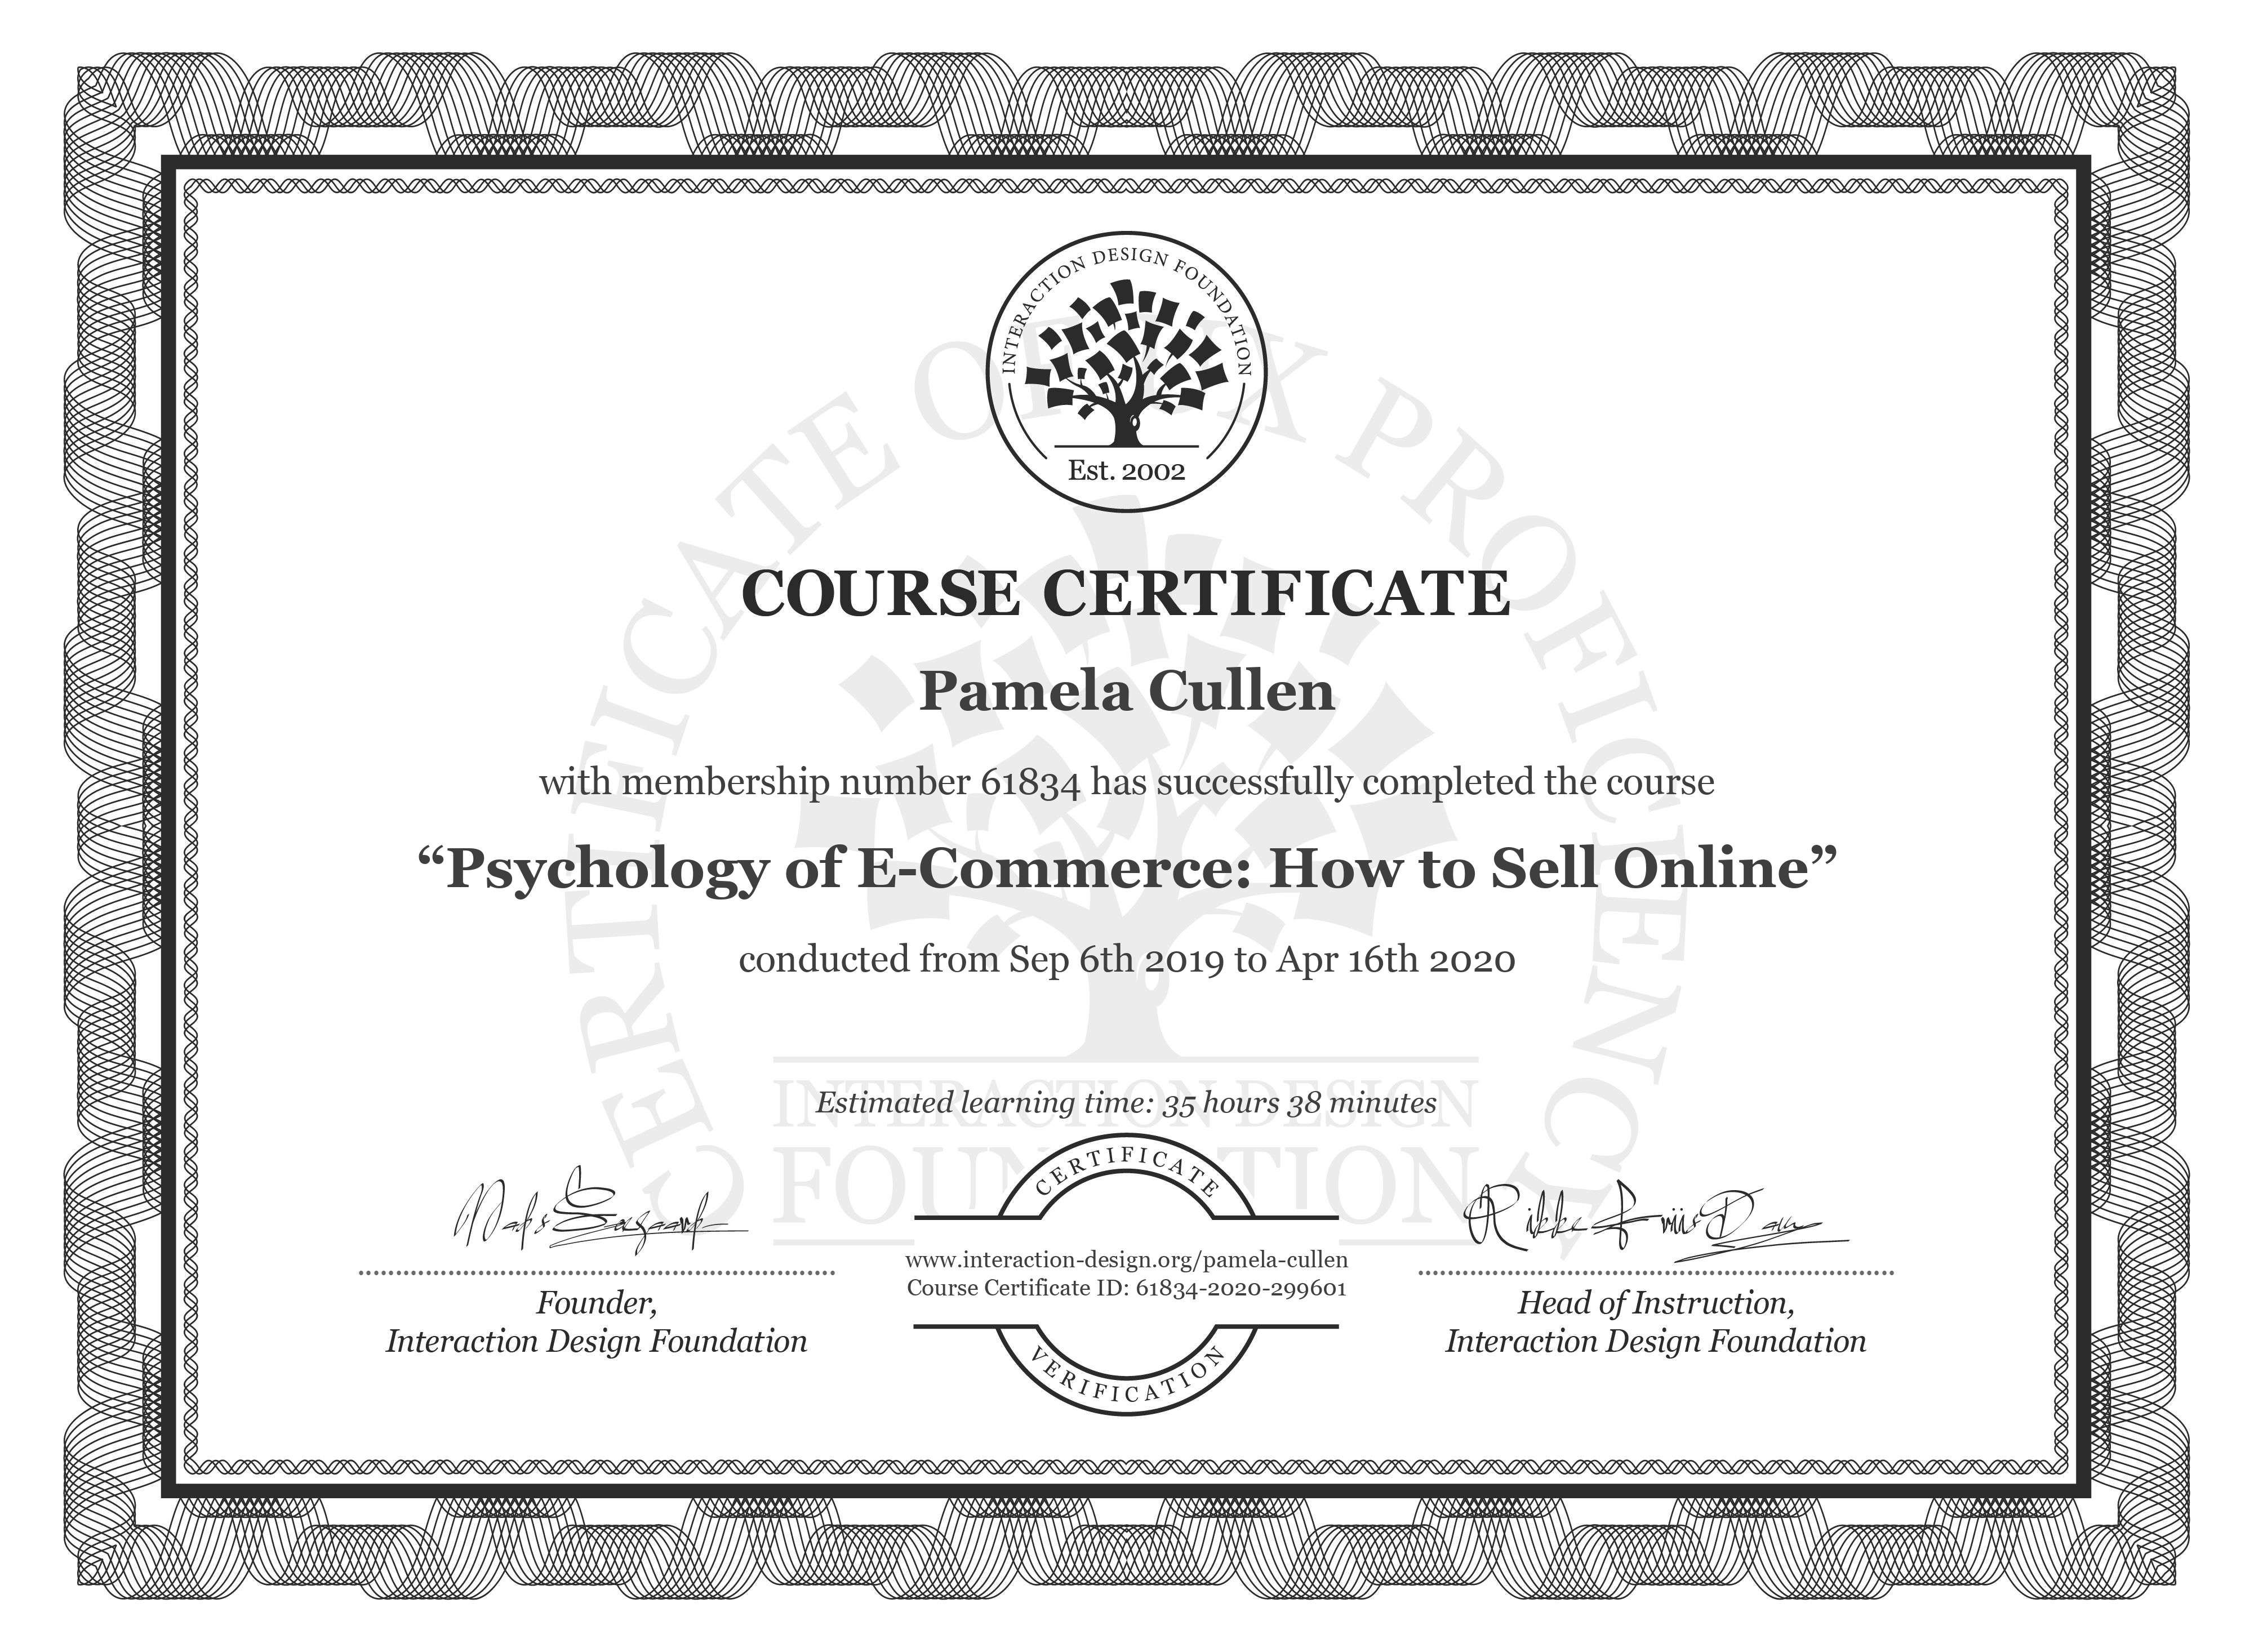 Pamela Cullen's Course Certificate: Psychology of E-Commerce: How to Sell Online